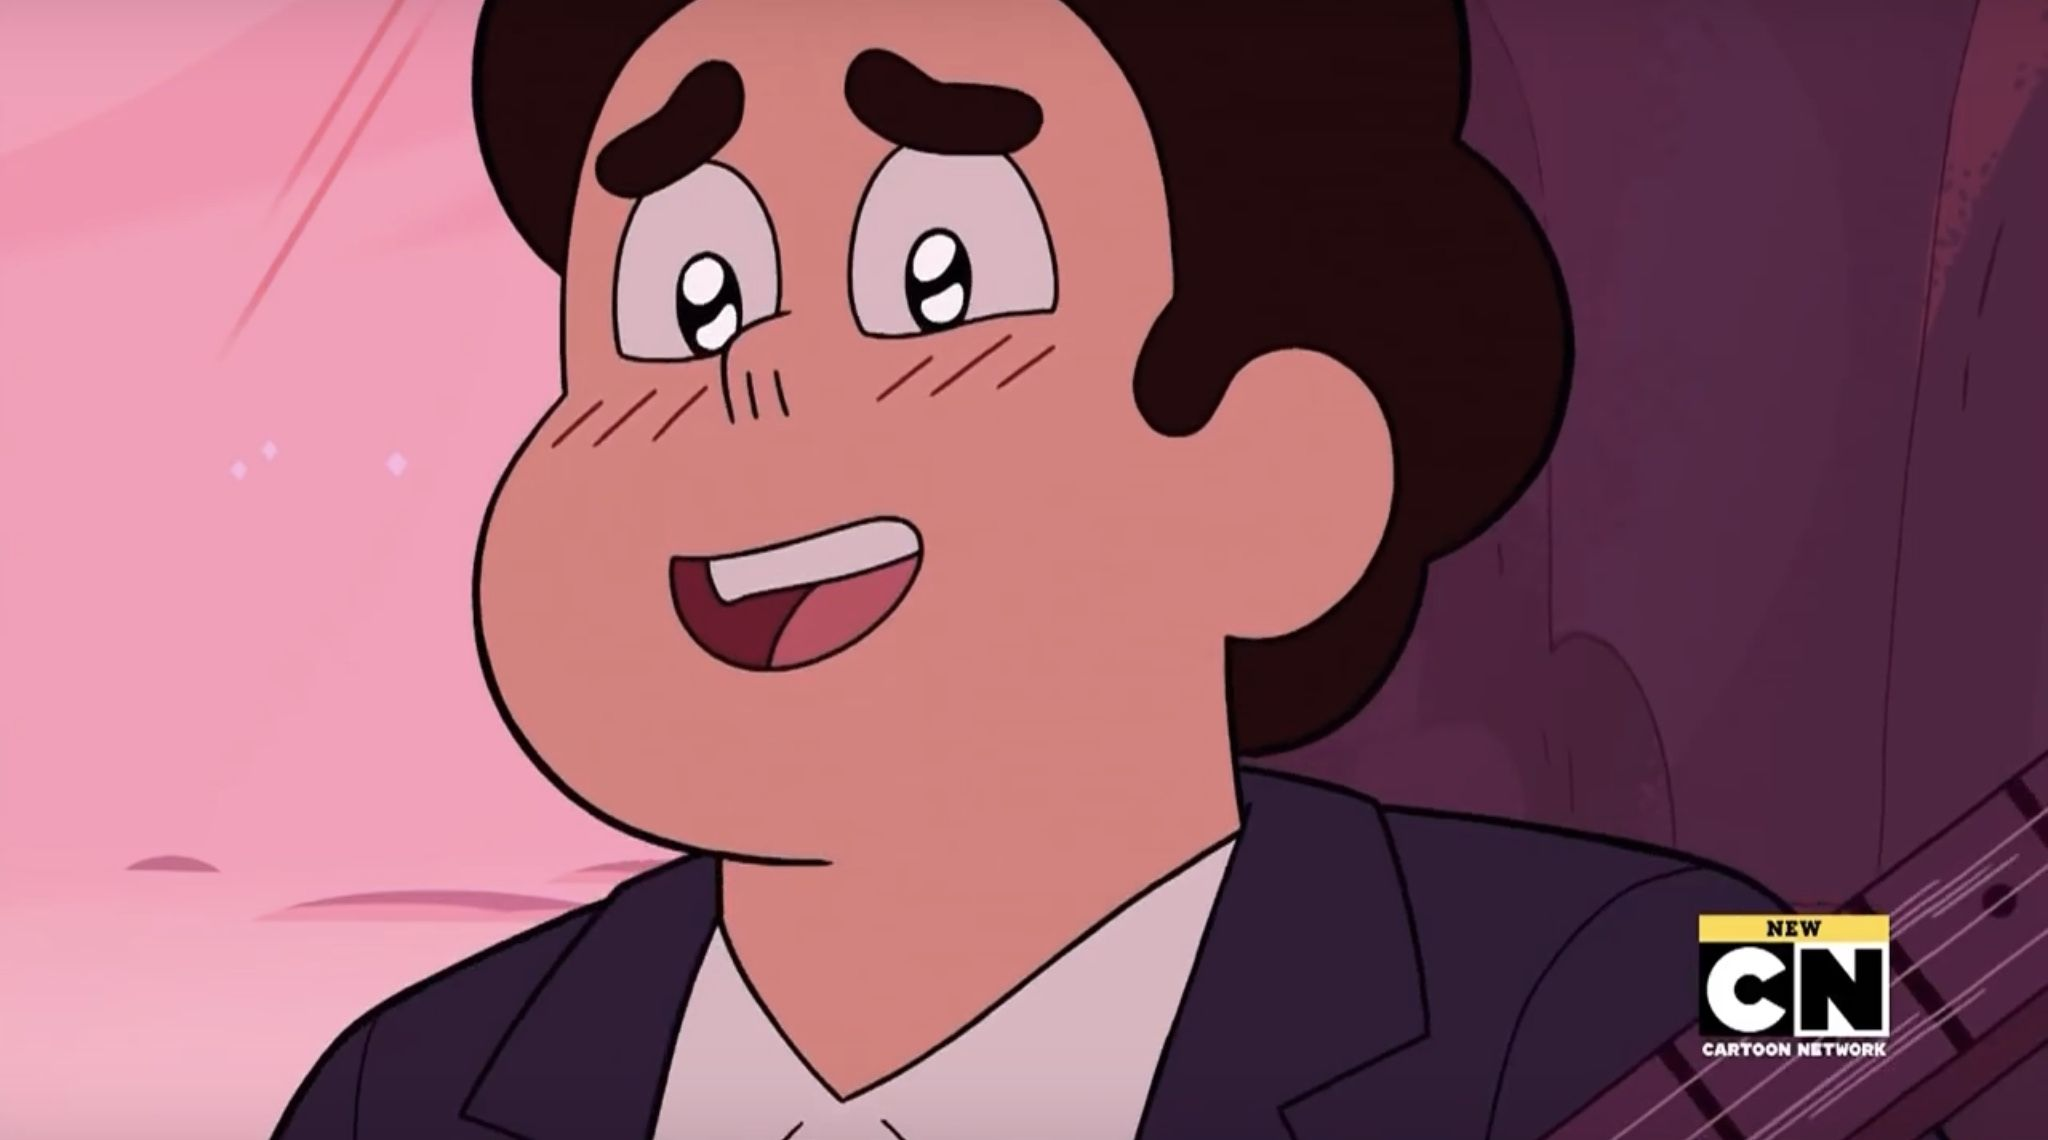 I'd rather be watching Steven universe with you